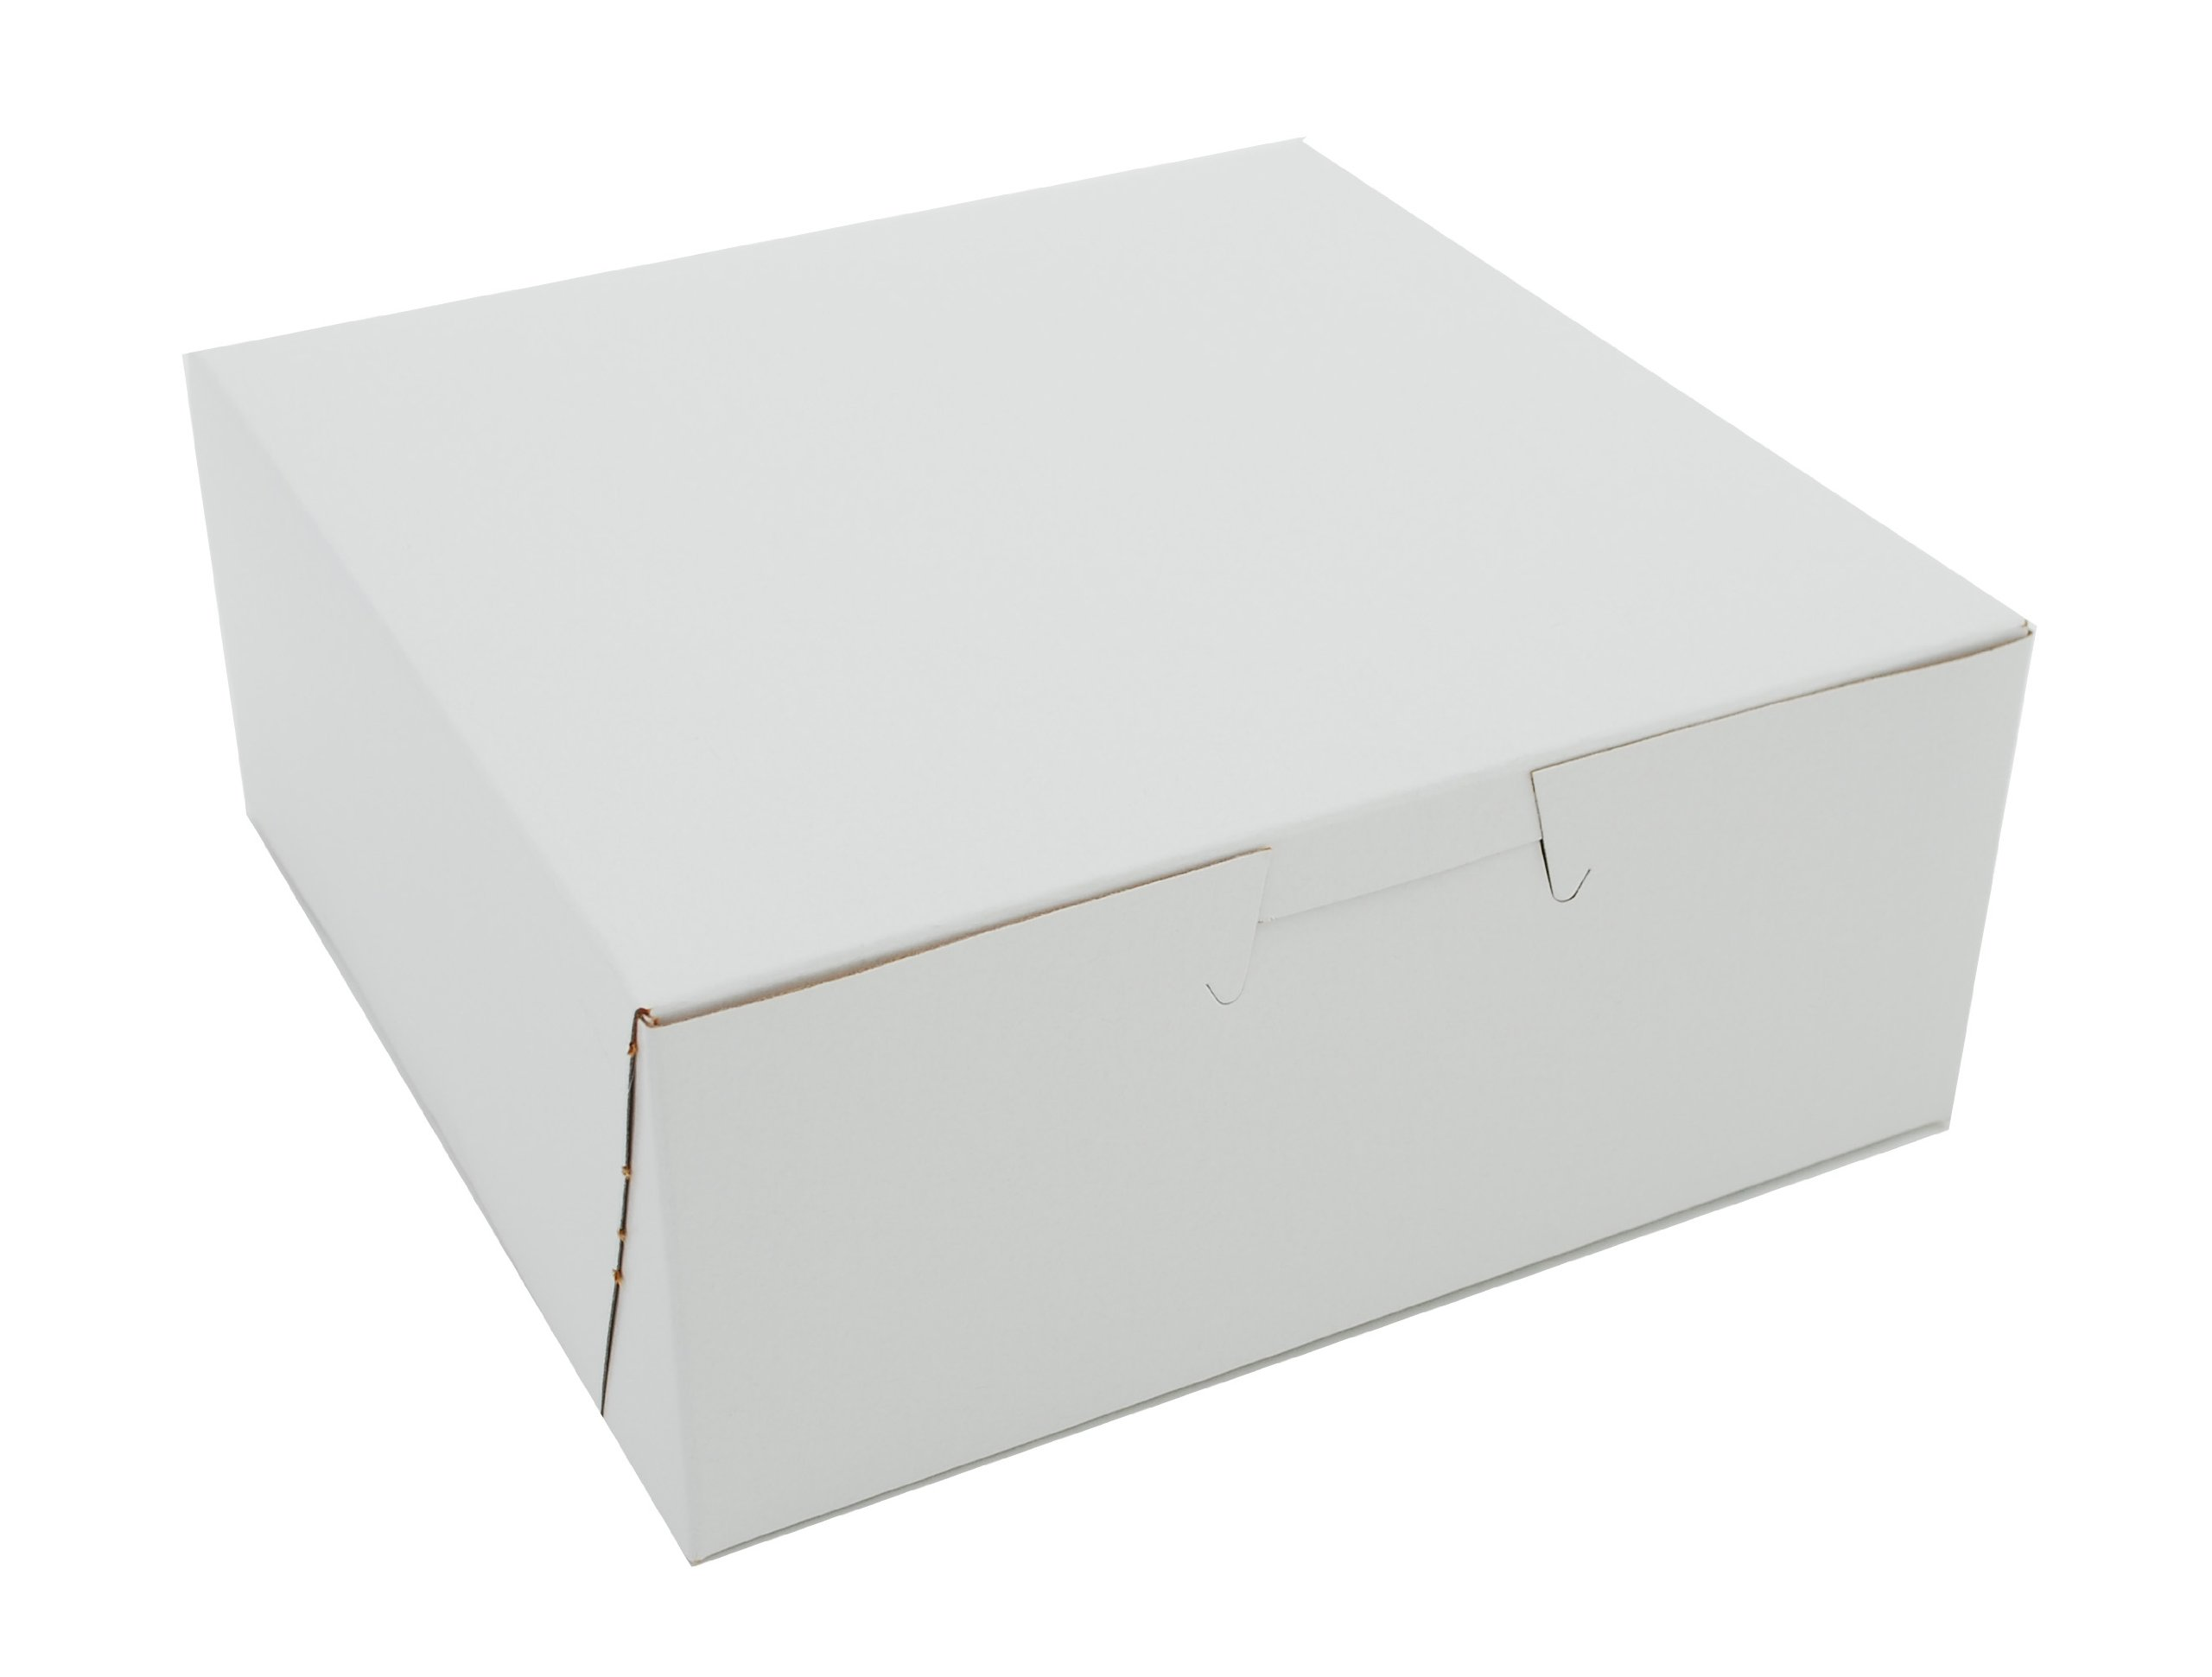 Southern Champion Tray 0901 Premium Clay Coated Kraft Paperboard White Non-Window Lock Corner Bakery Box, 6'' Length x 6'' Width x 2-1/2'' Height (Case of 250)